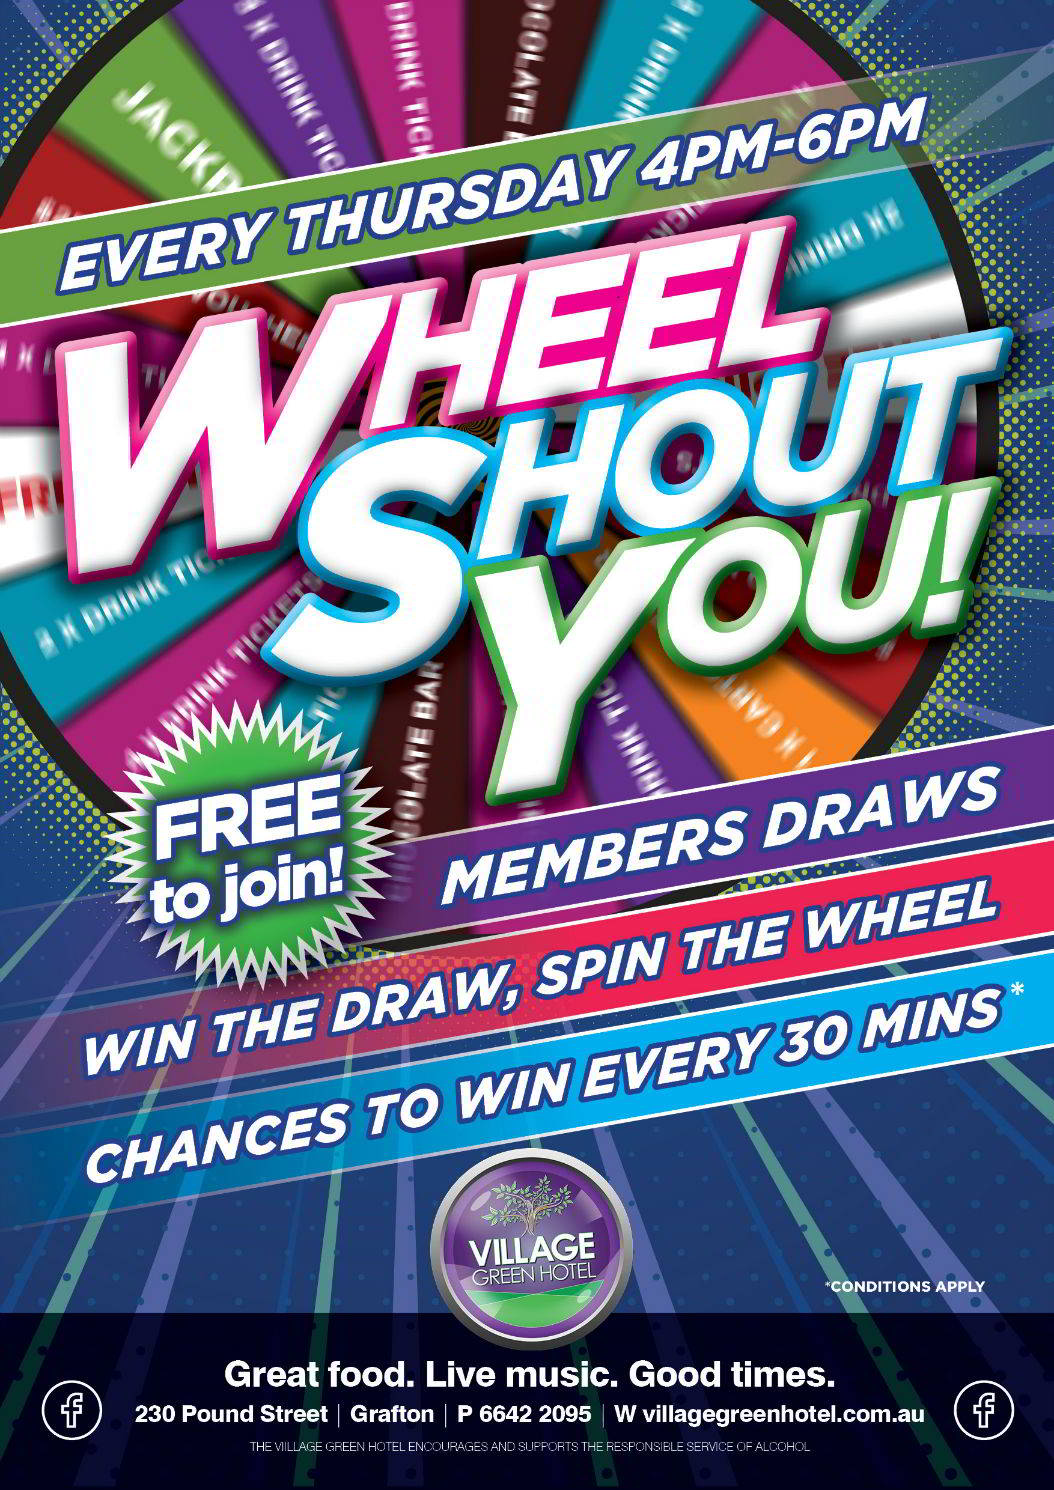 Wheel Shout You Thursday 4-6pm